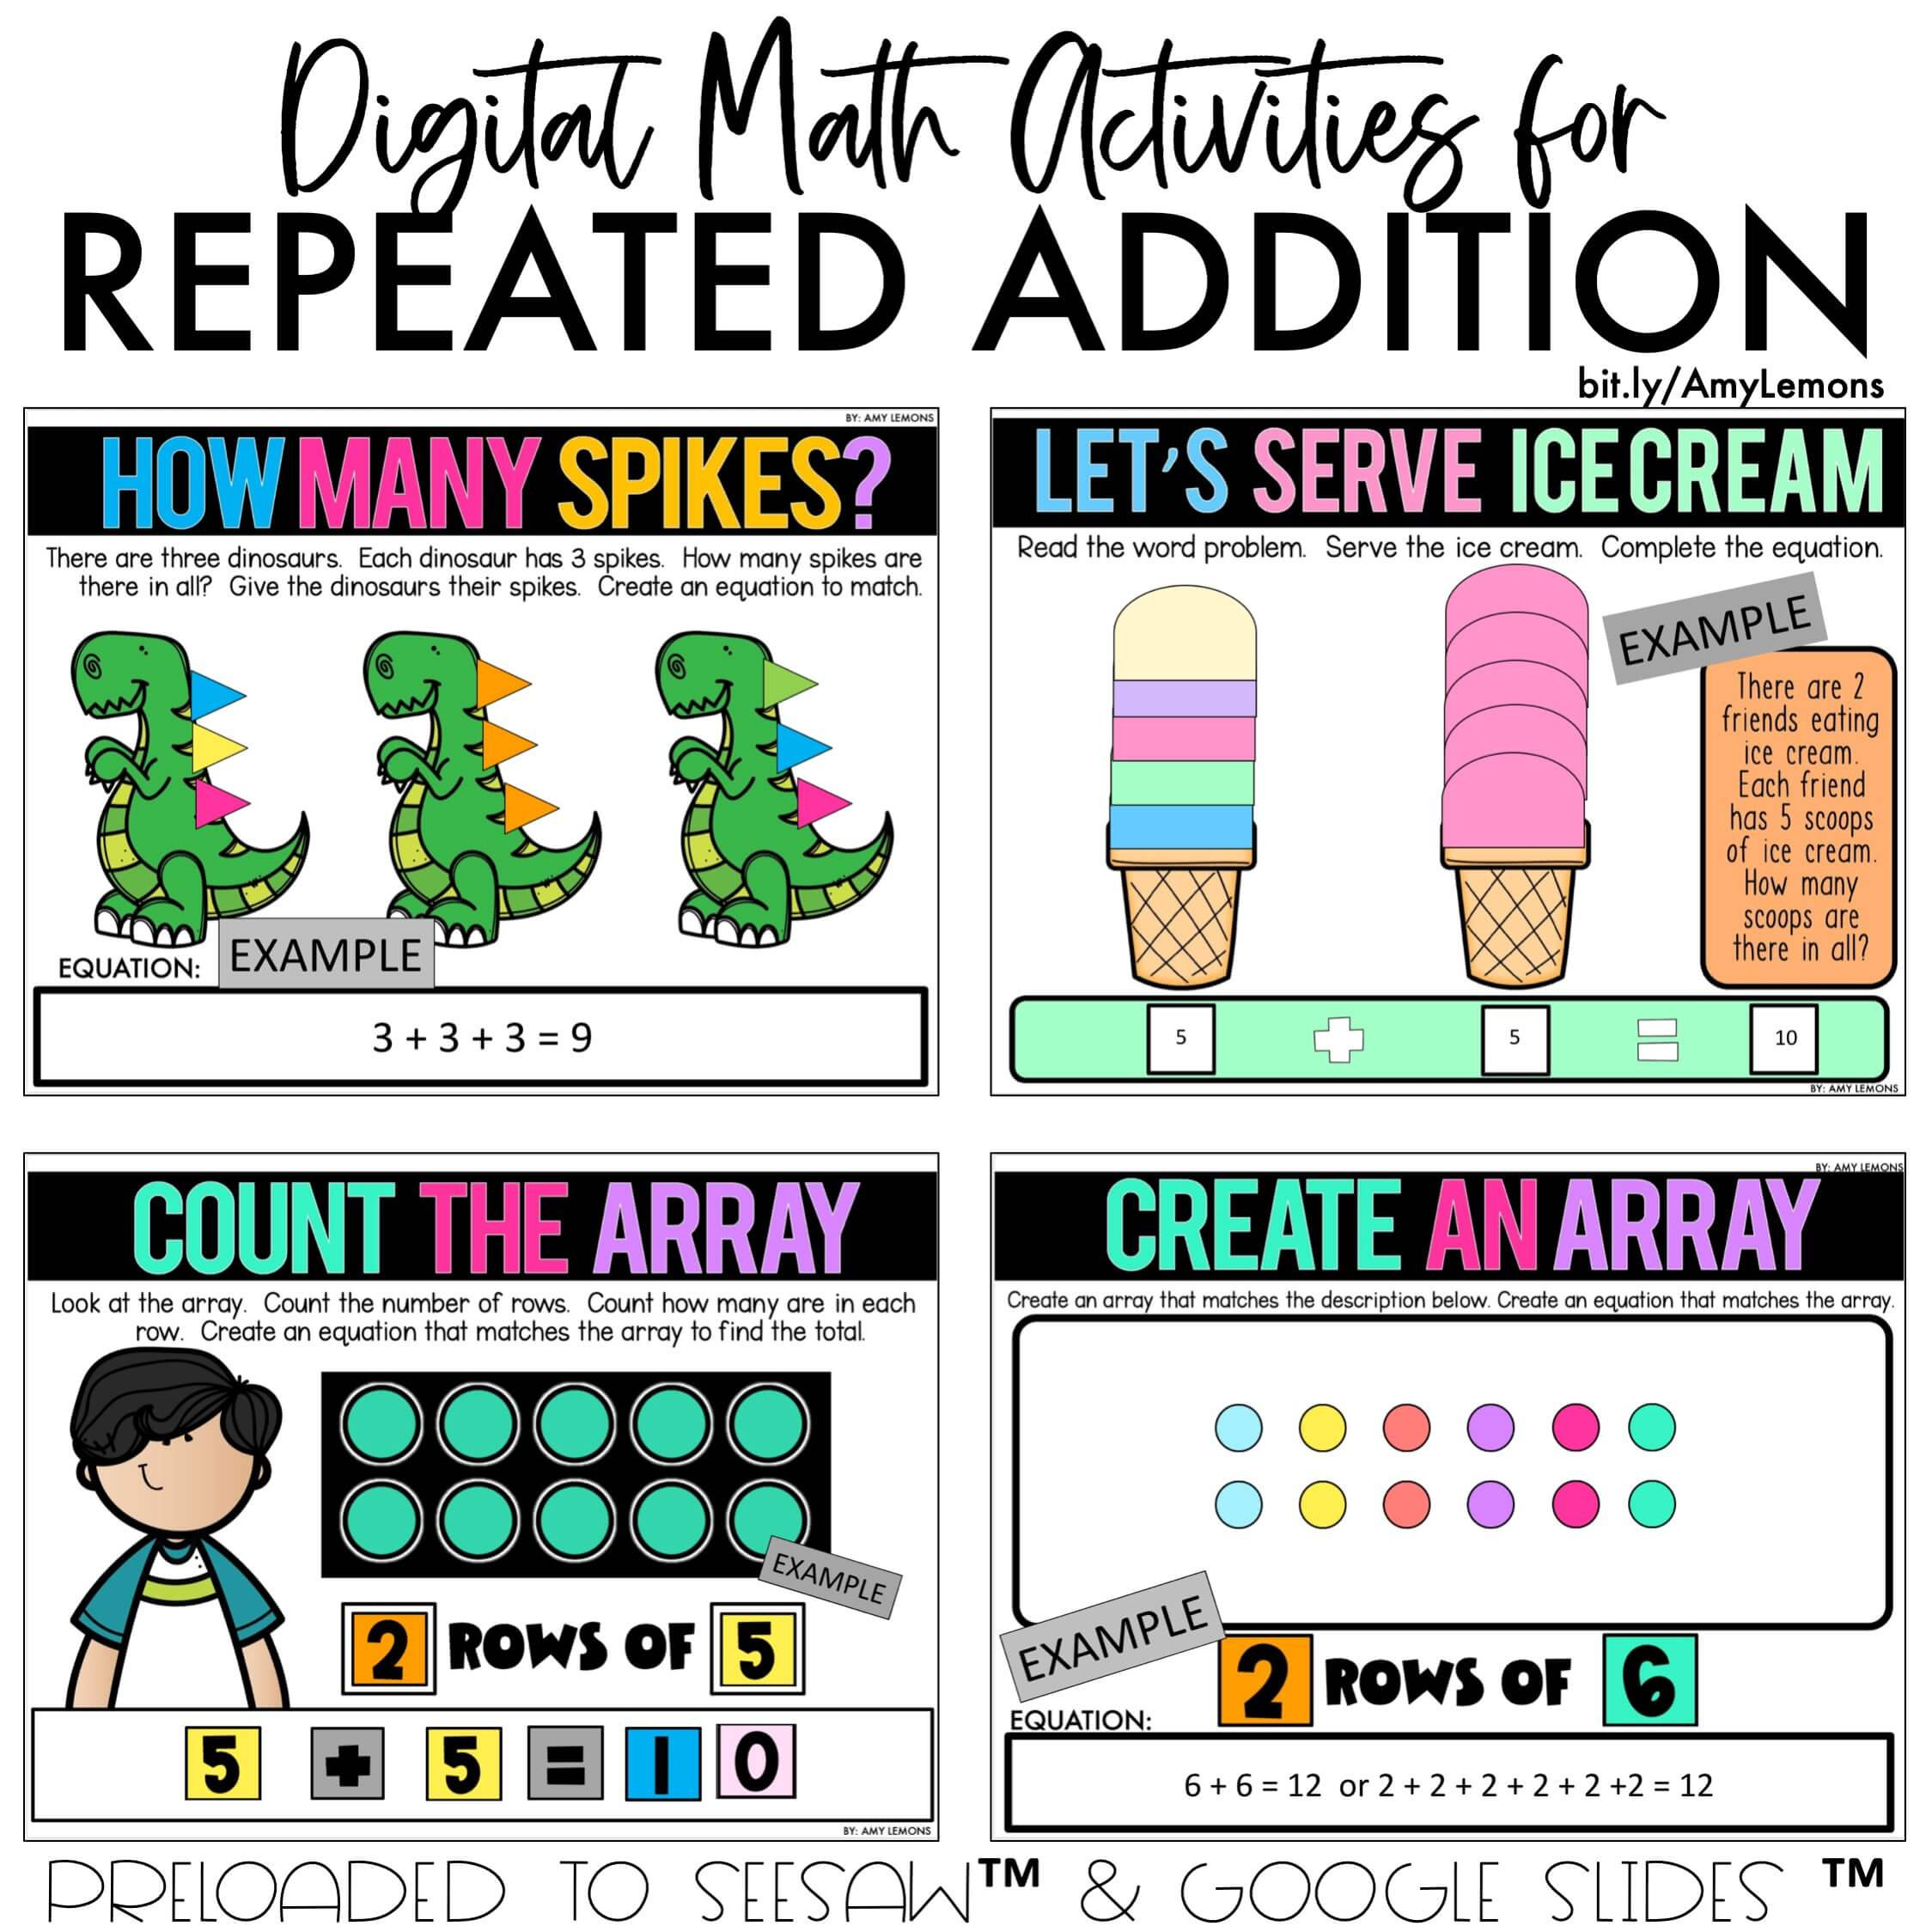 medium resolution of Digital Math Activities for Virtual Learning - Amy Lemons